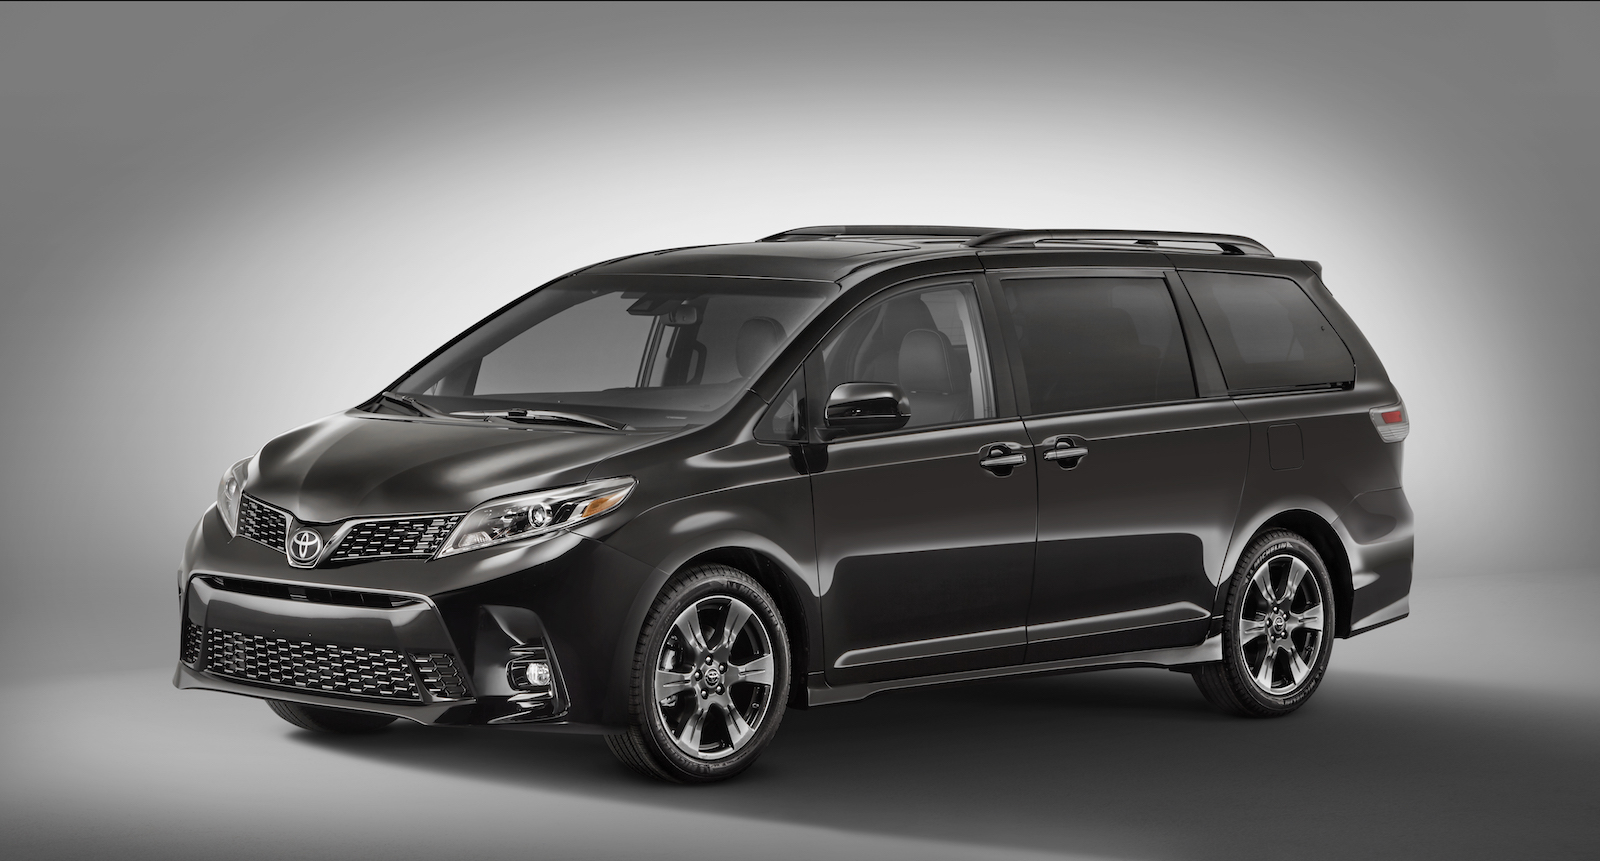 2018 toyota sienna yaris updated with new faces and equipment news. Black Bedroom Furniture Sets. Home Design Ideas